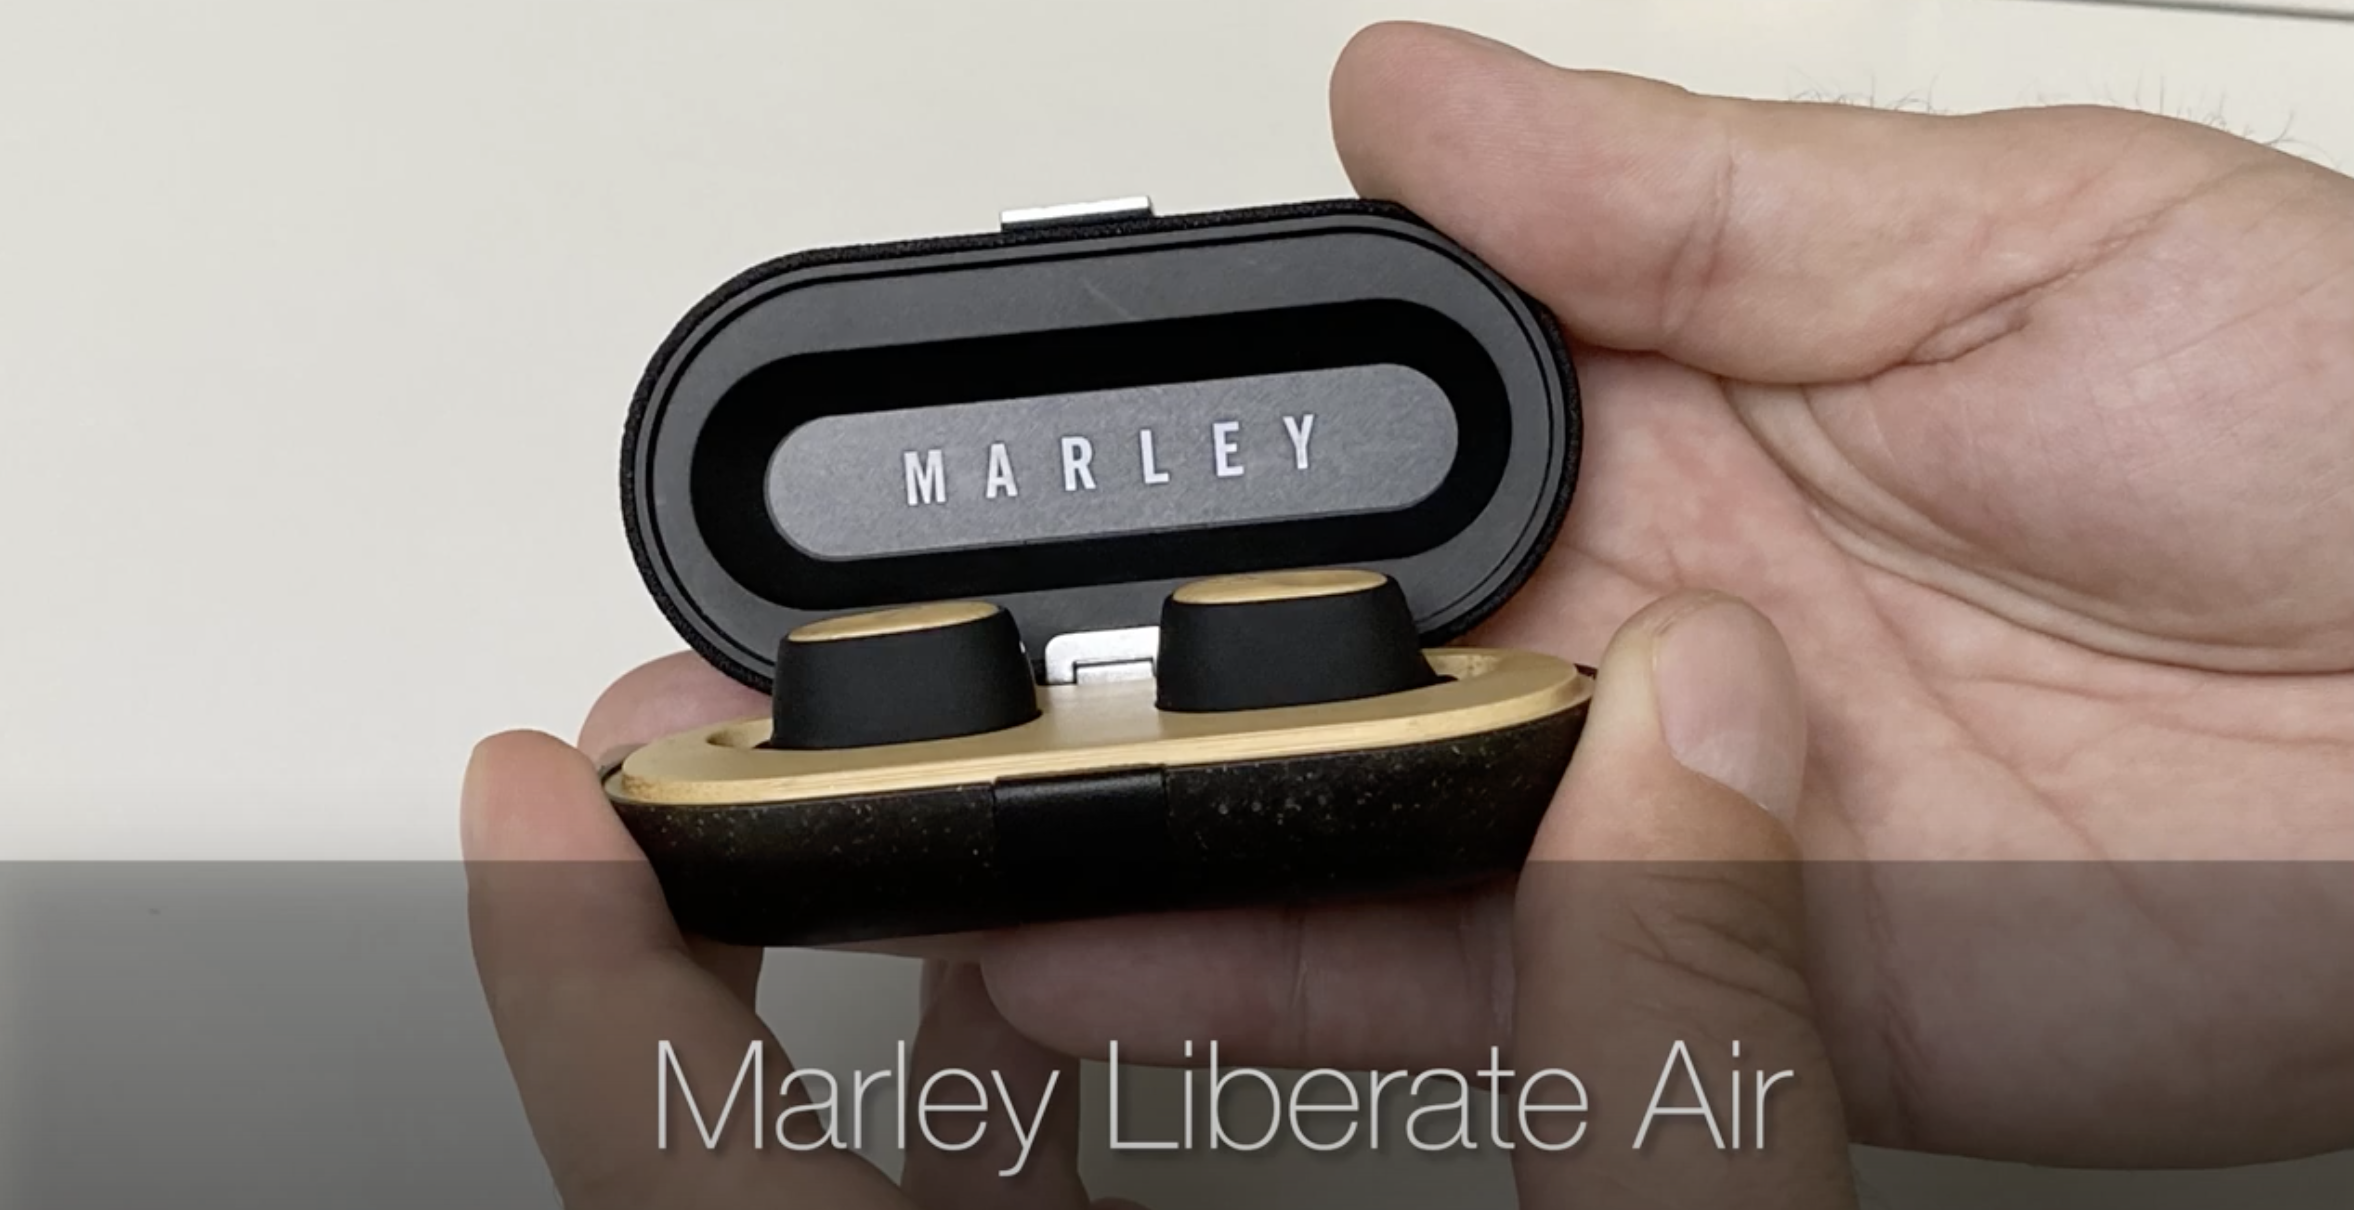 Marley Liberate Air